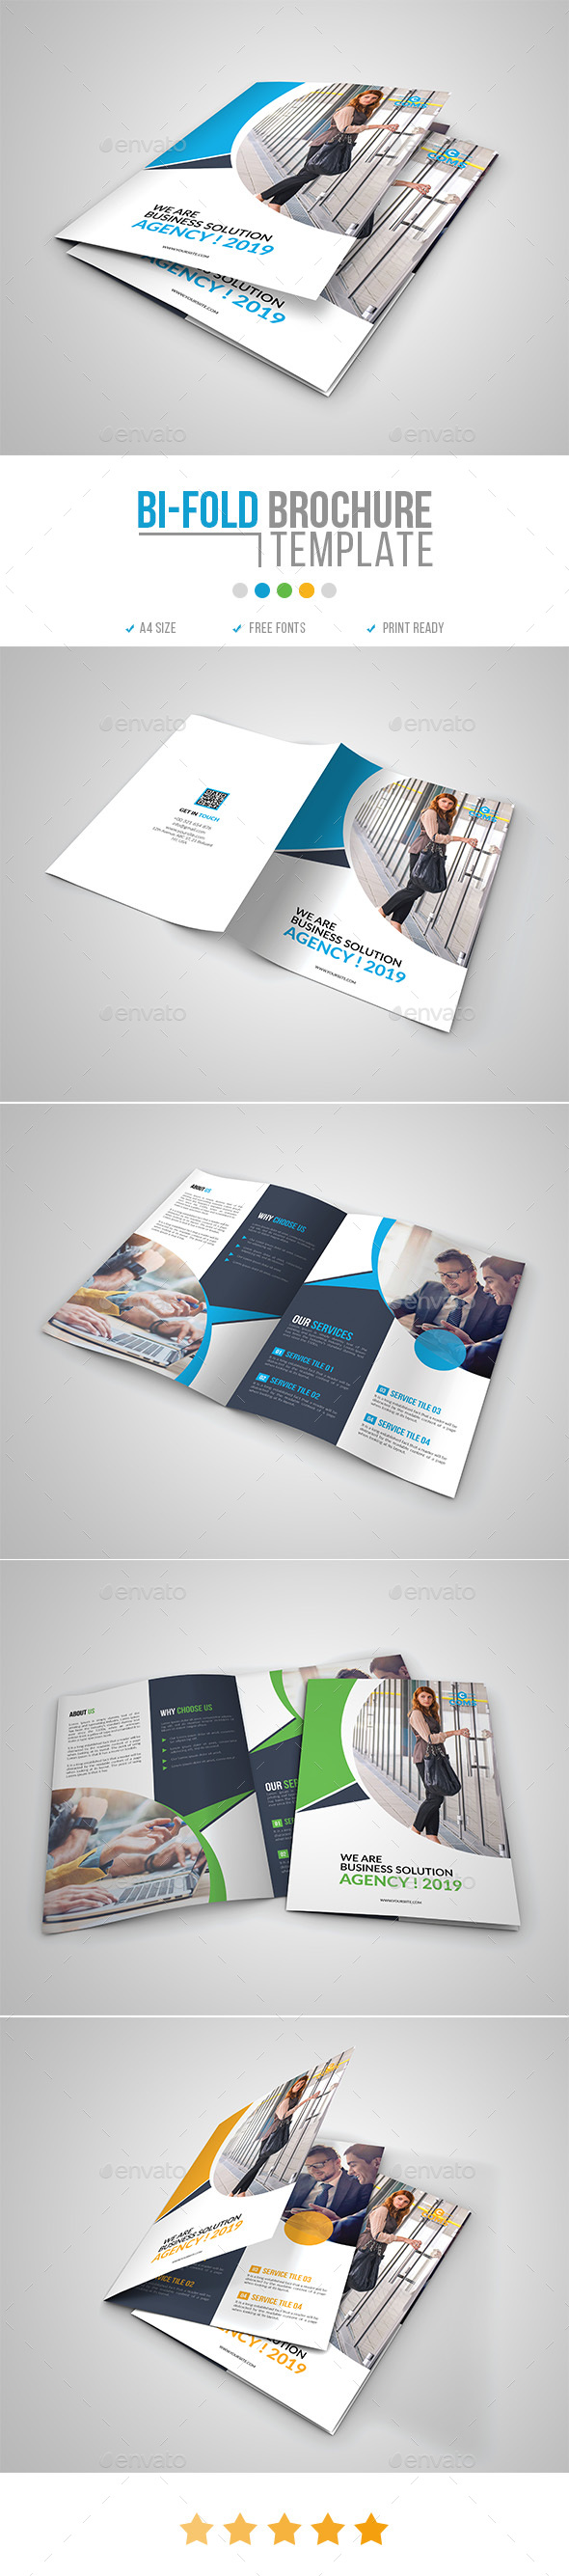 Corporate Bi-Fold Brochure Template 16 - Corporate Brochures